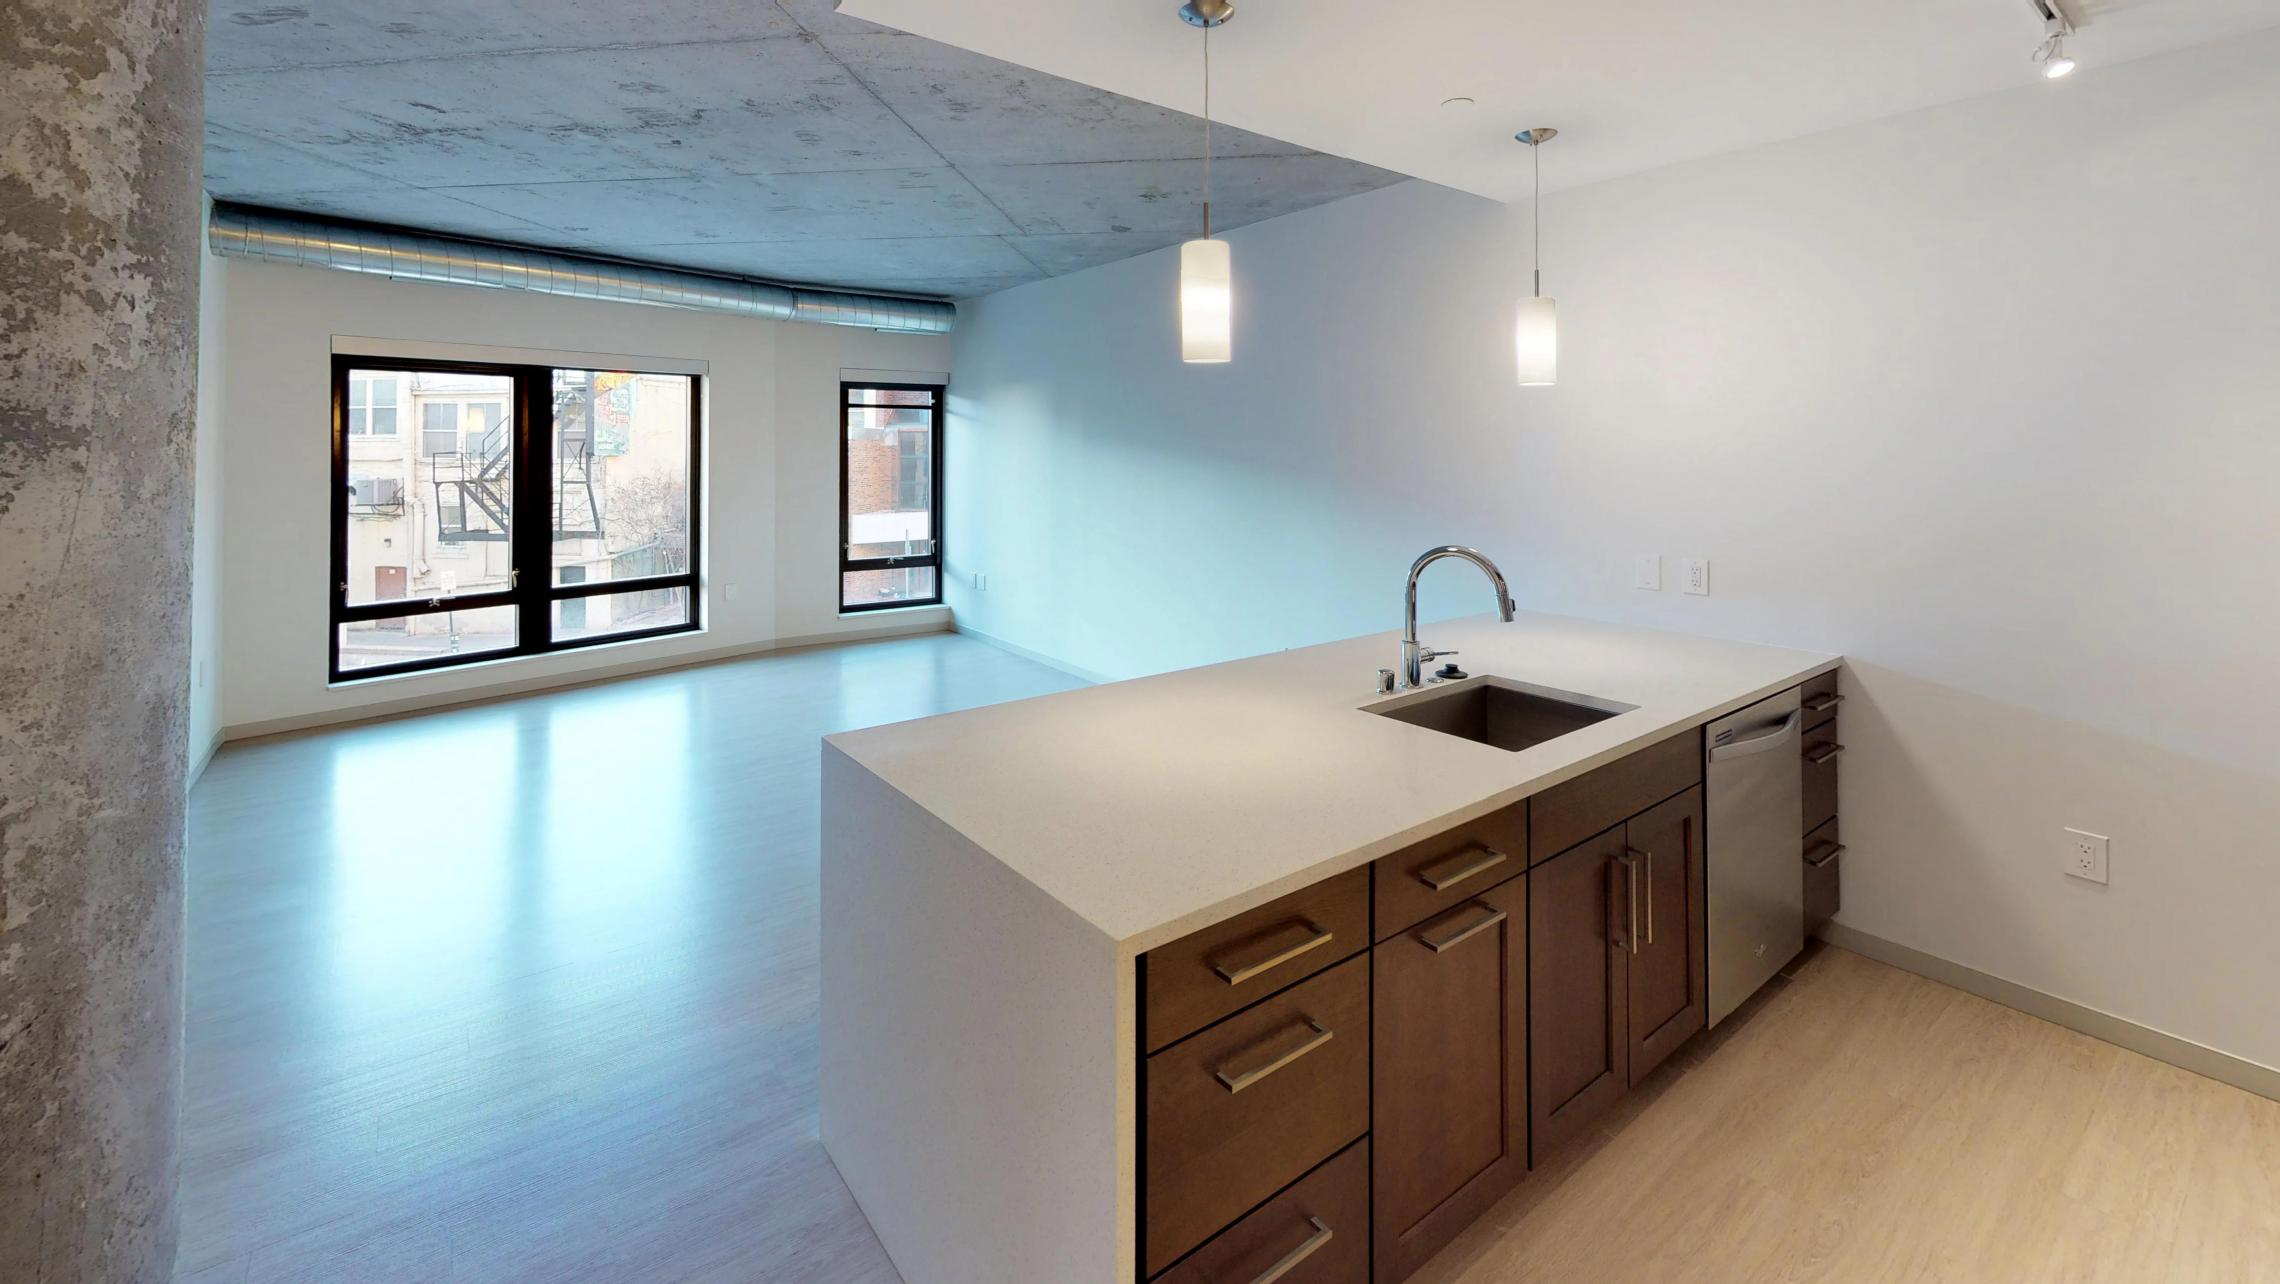 Pressman-Apartment-217-One-Bedroom-Luxury-Downtown-Upscale-Modern-Downtown-Madison-Capitol-Square